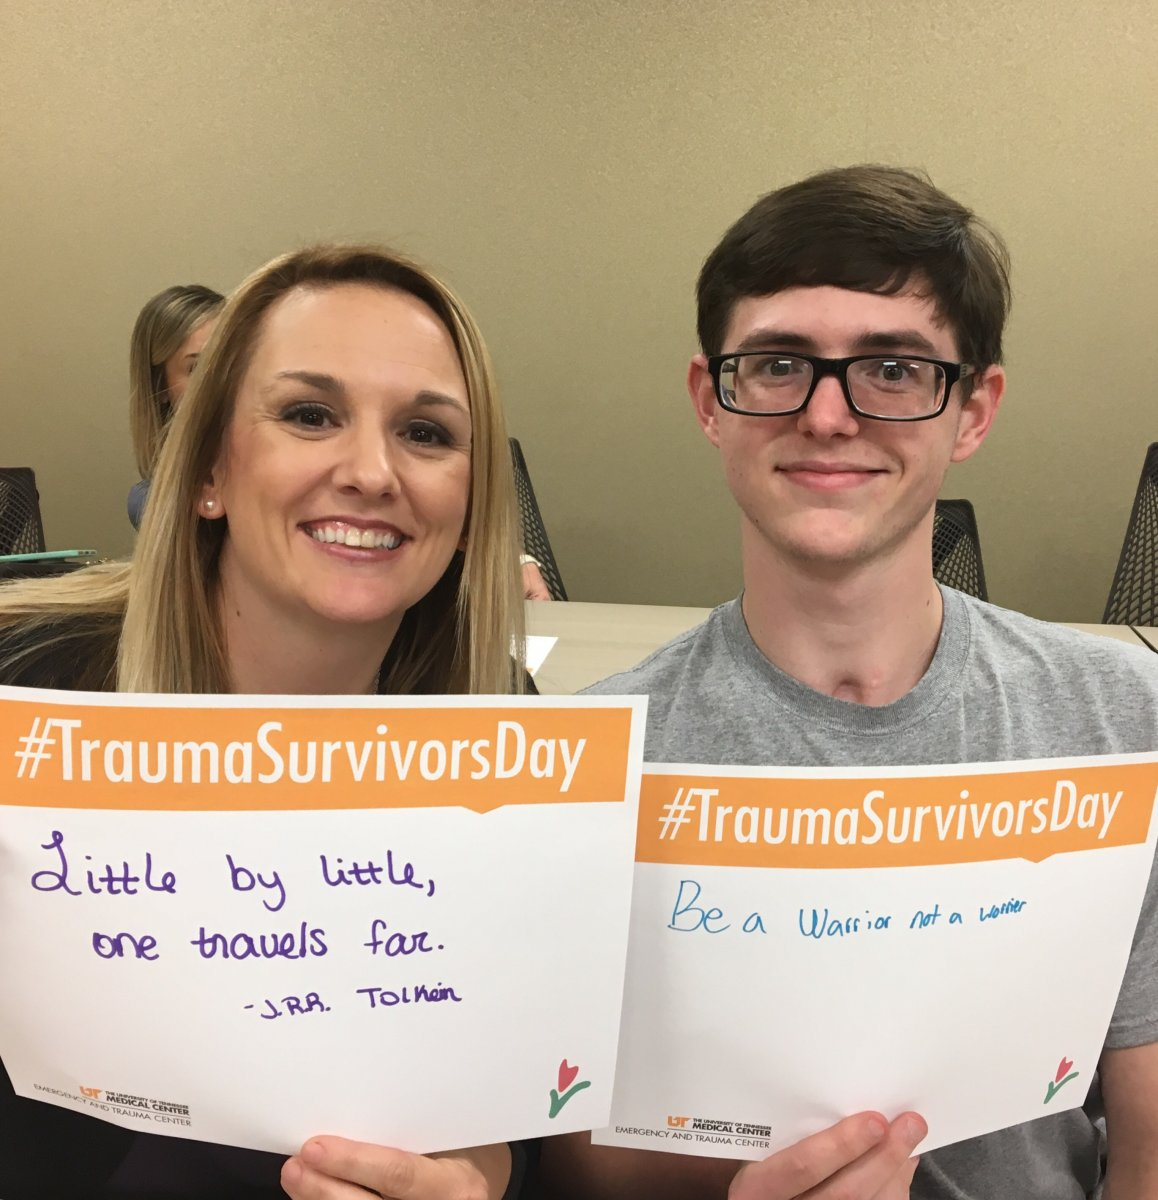 Austin McGhee and his mom, Jennifer Roach, at a Trauma Survivors Network event in Knoxville, Tennessee